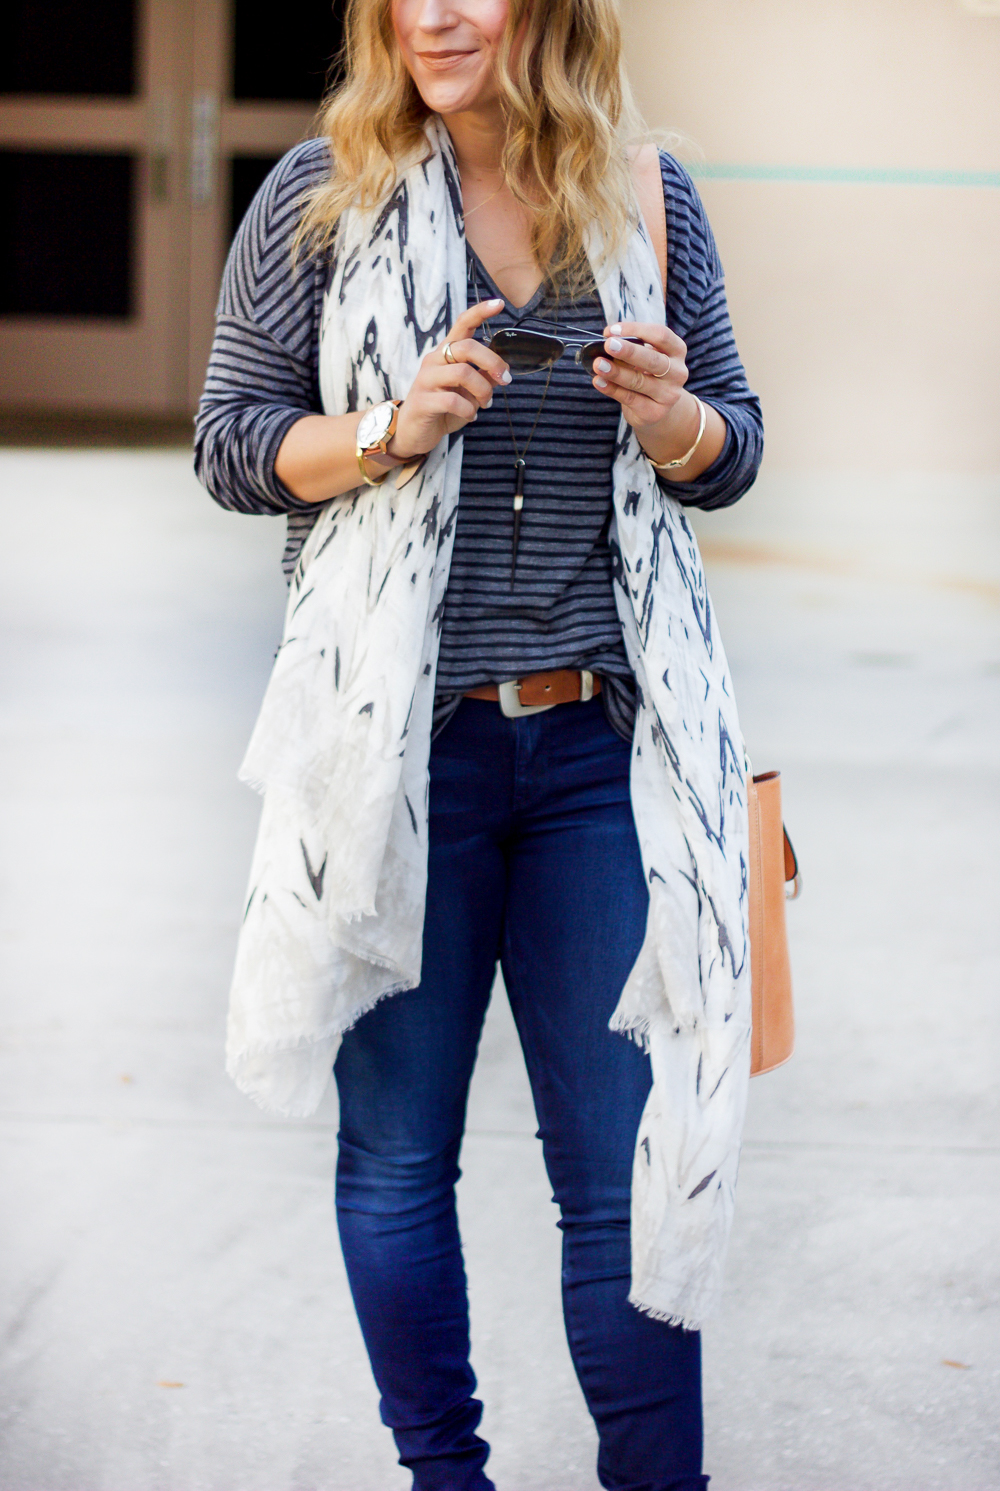 Canadian fashion blogger, Jackie of Something About That is wearing a casual outfit, featuring a tee from Madewell, a light scarf and GUESS jeans